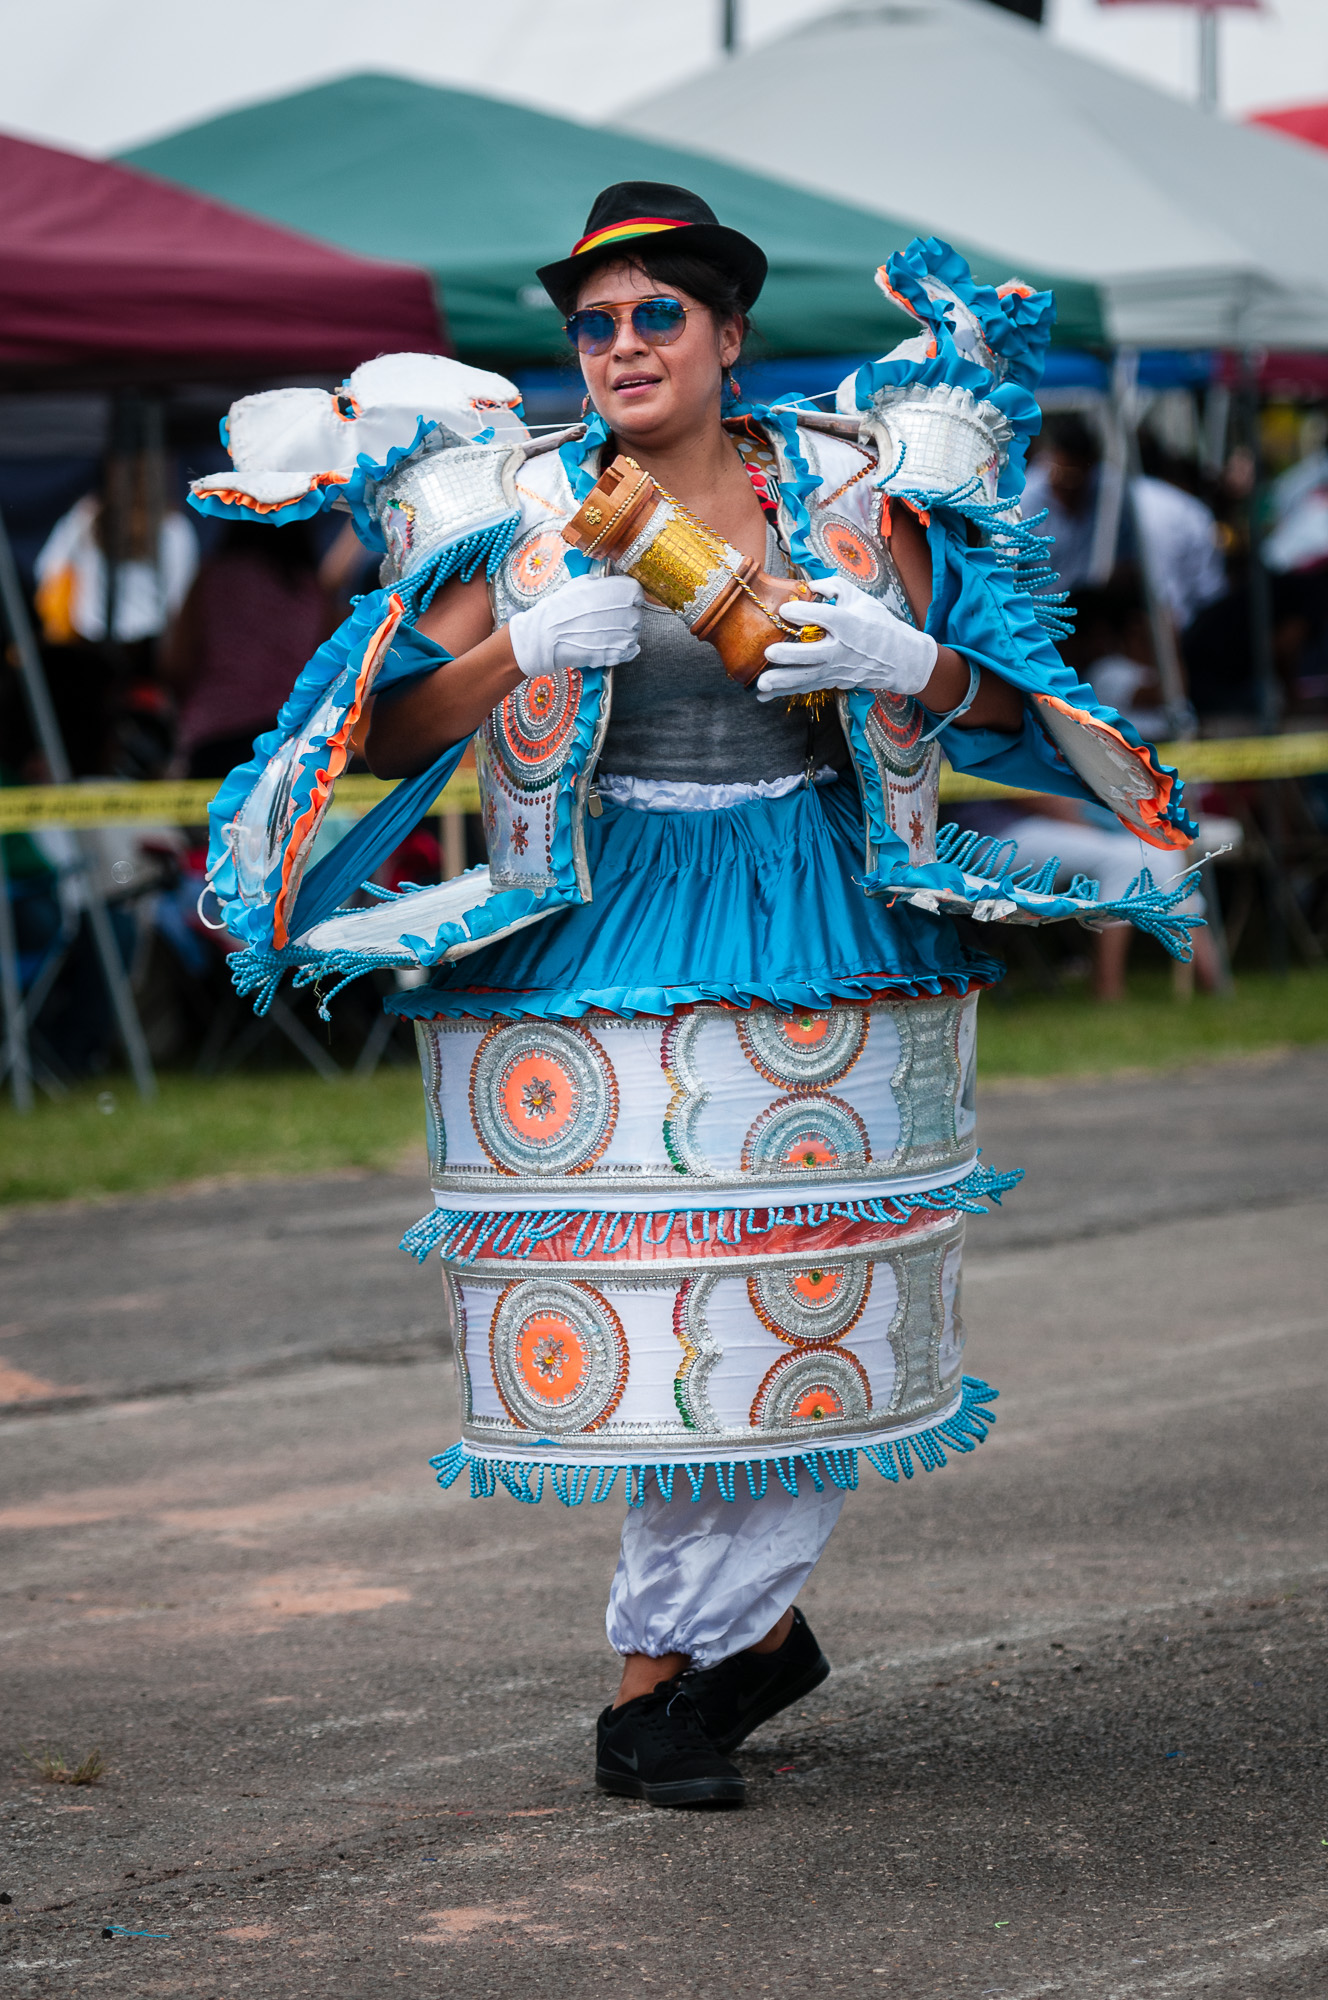 A member of Embajadores del Folklore performing a Morenada dance.